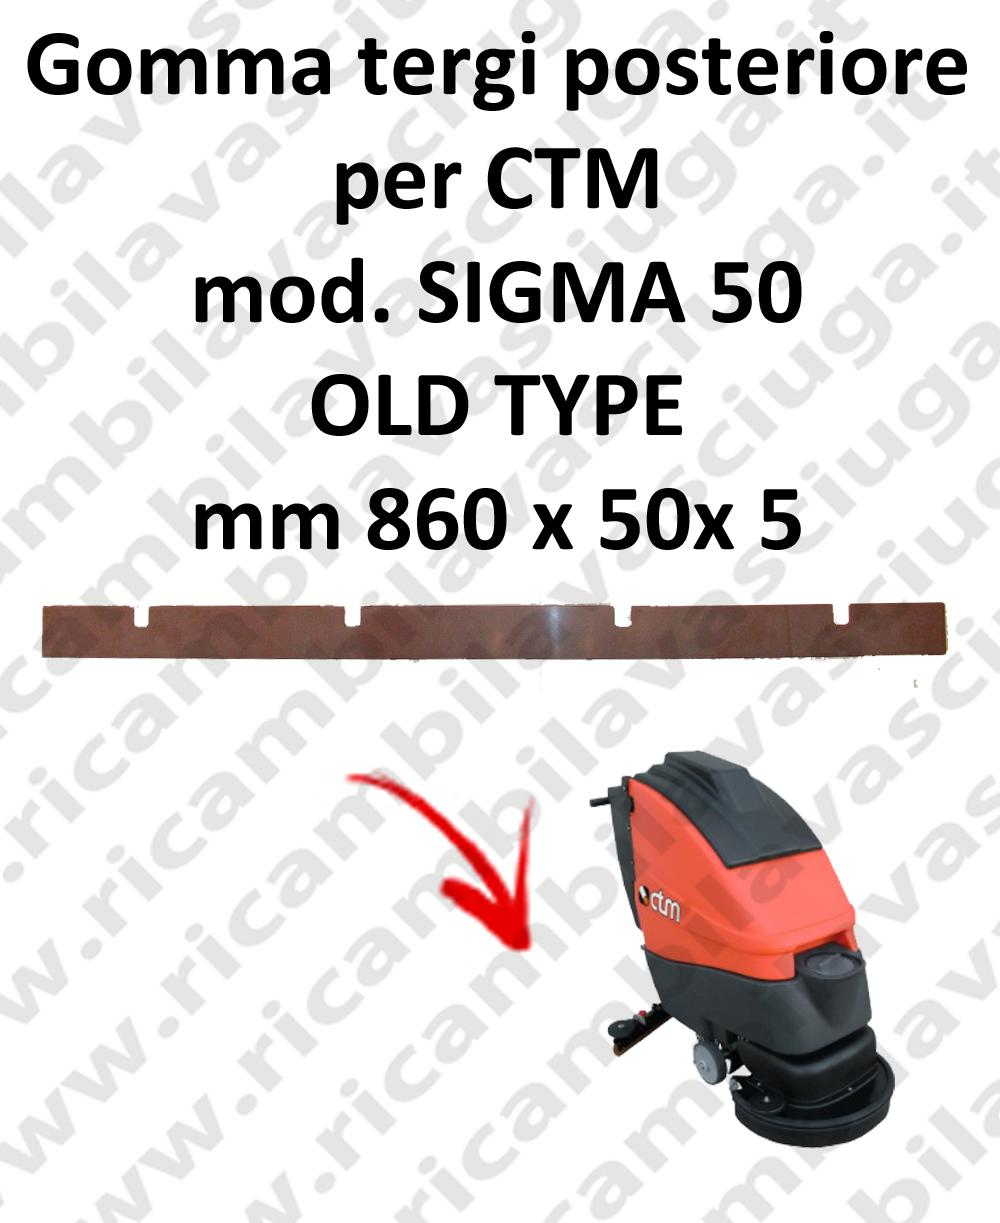 SIGMA 50 OLD TYPE BAVETTE ARRIERE pour CTM